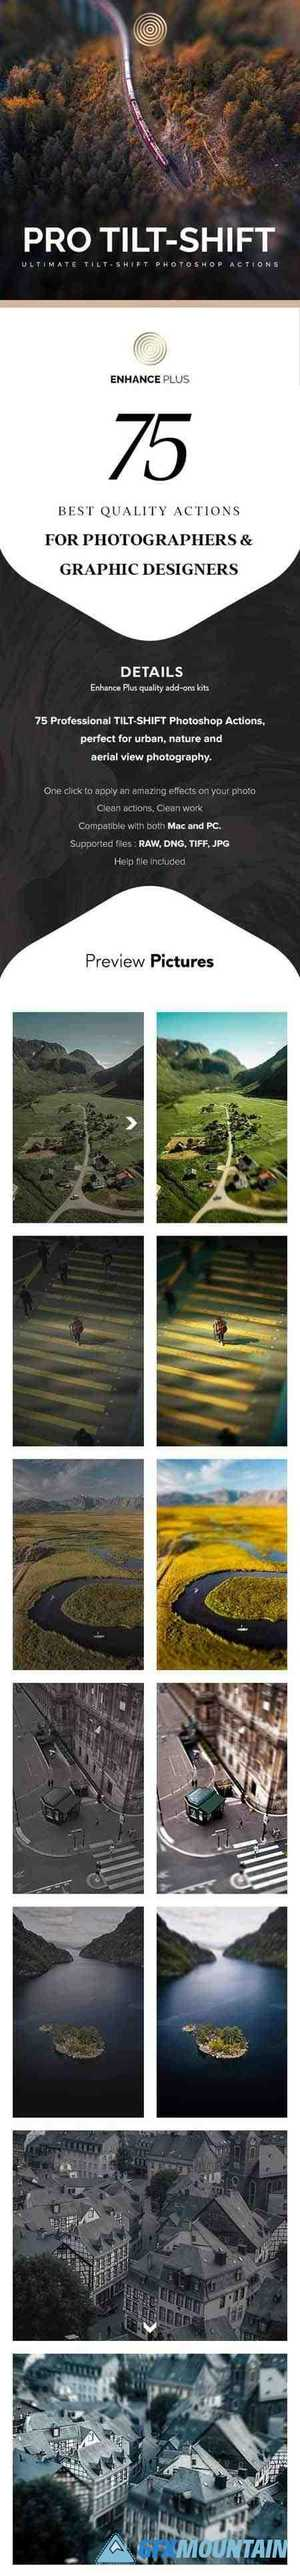 Professional Tilt-Shift Photoshop Actions 28114444